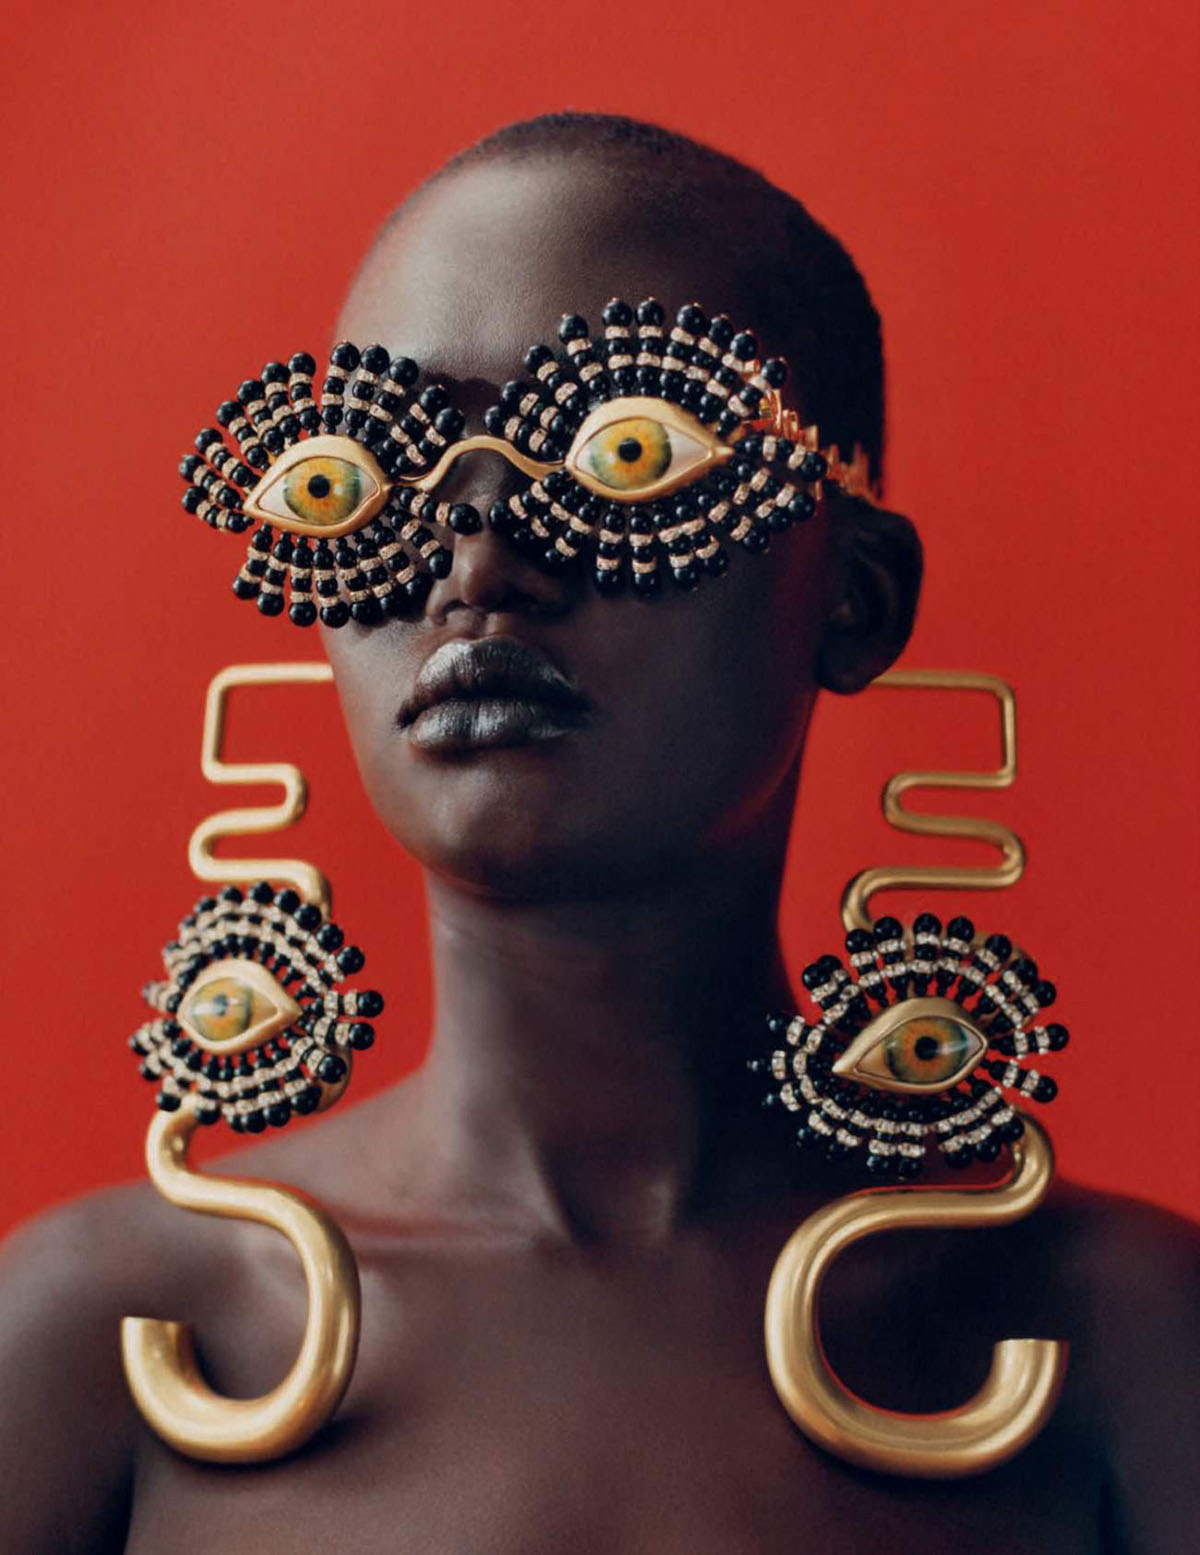 Awuor Dit, Tricia Akello and Liyah James by Camila Falquez for Vogue Spain July 2021